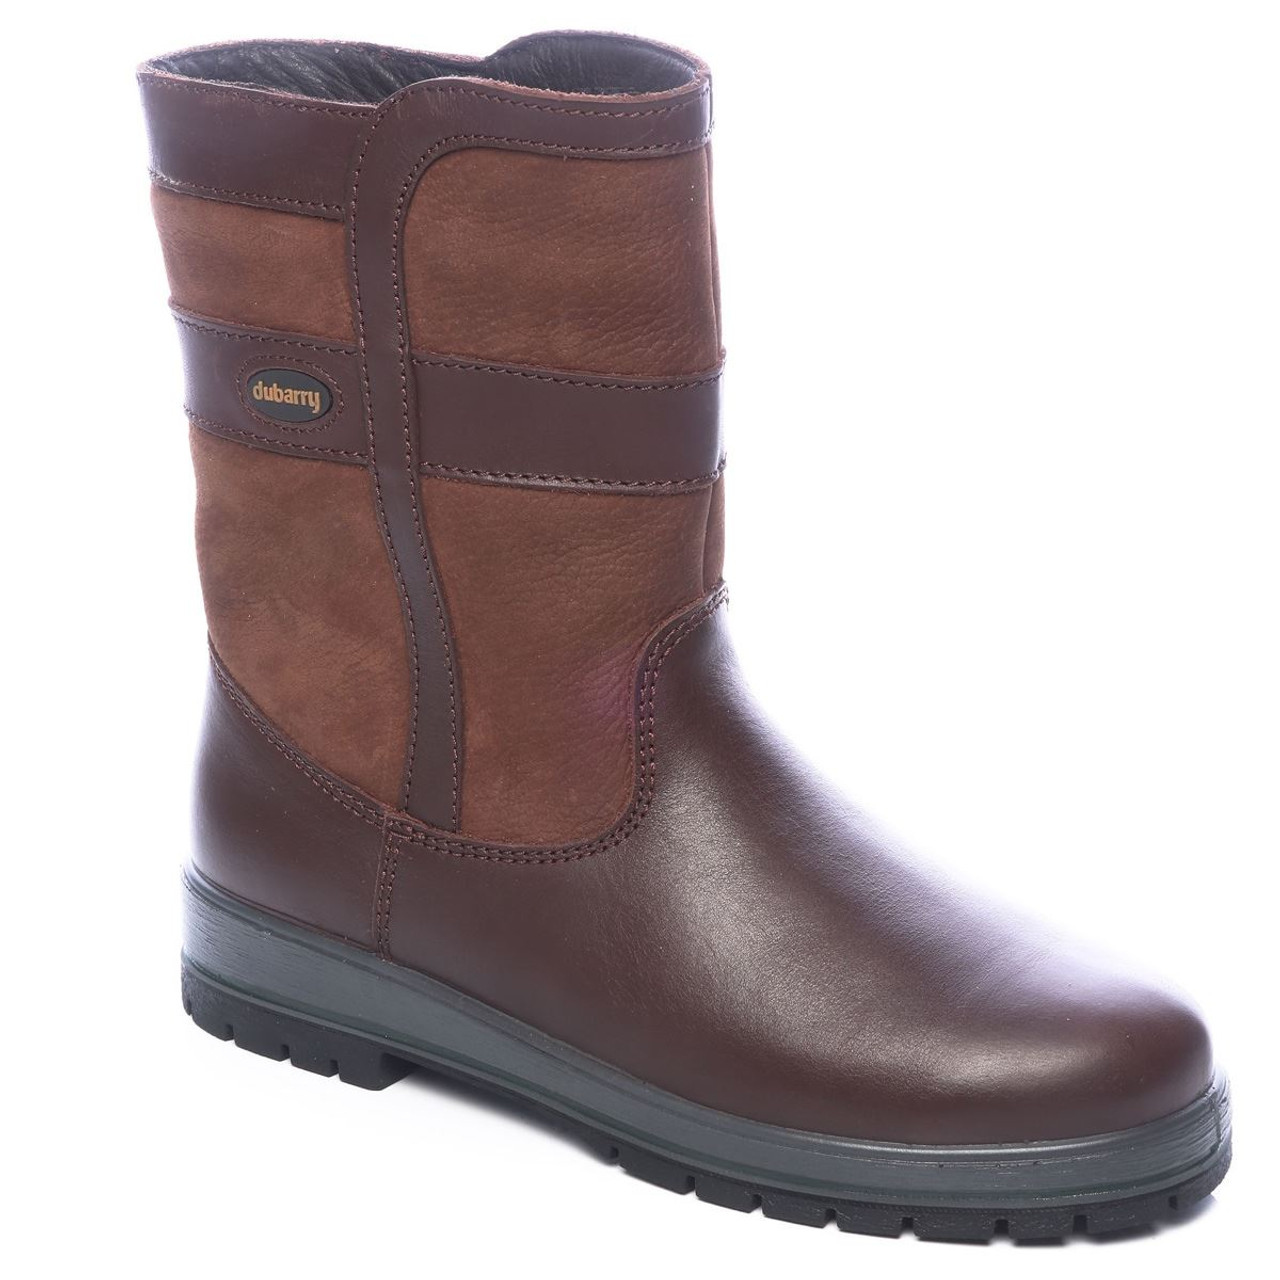 Dubarry Roscommon Boots in Walnut